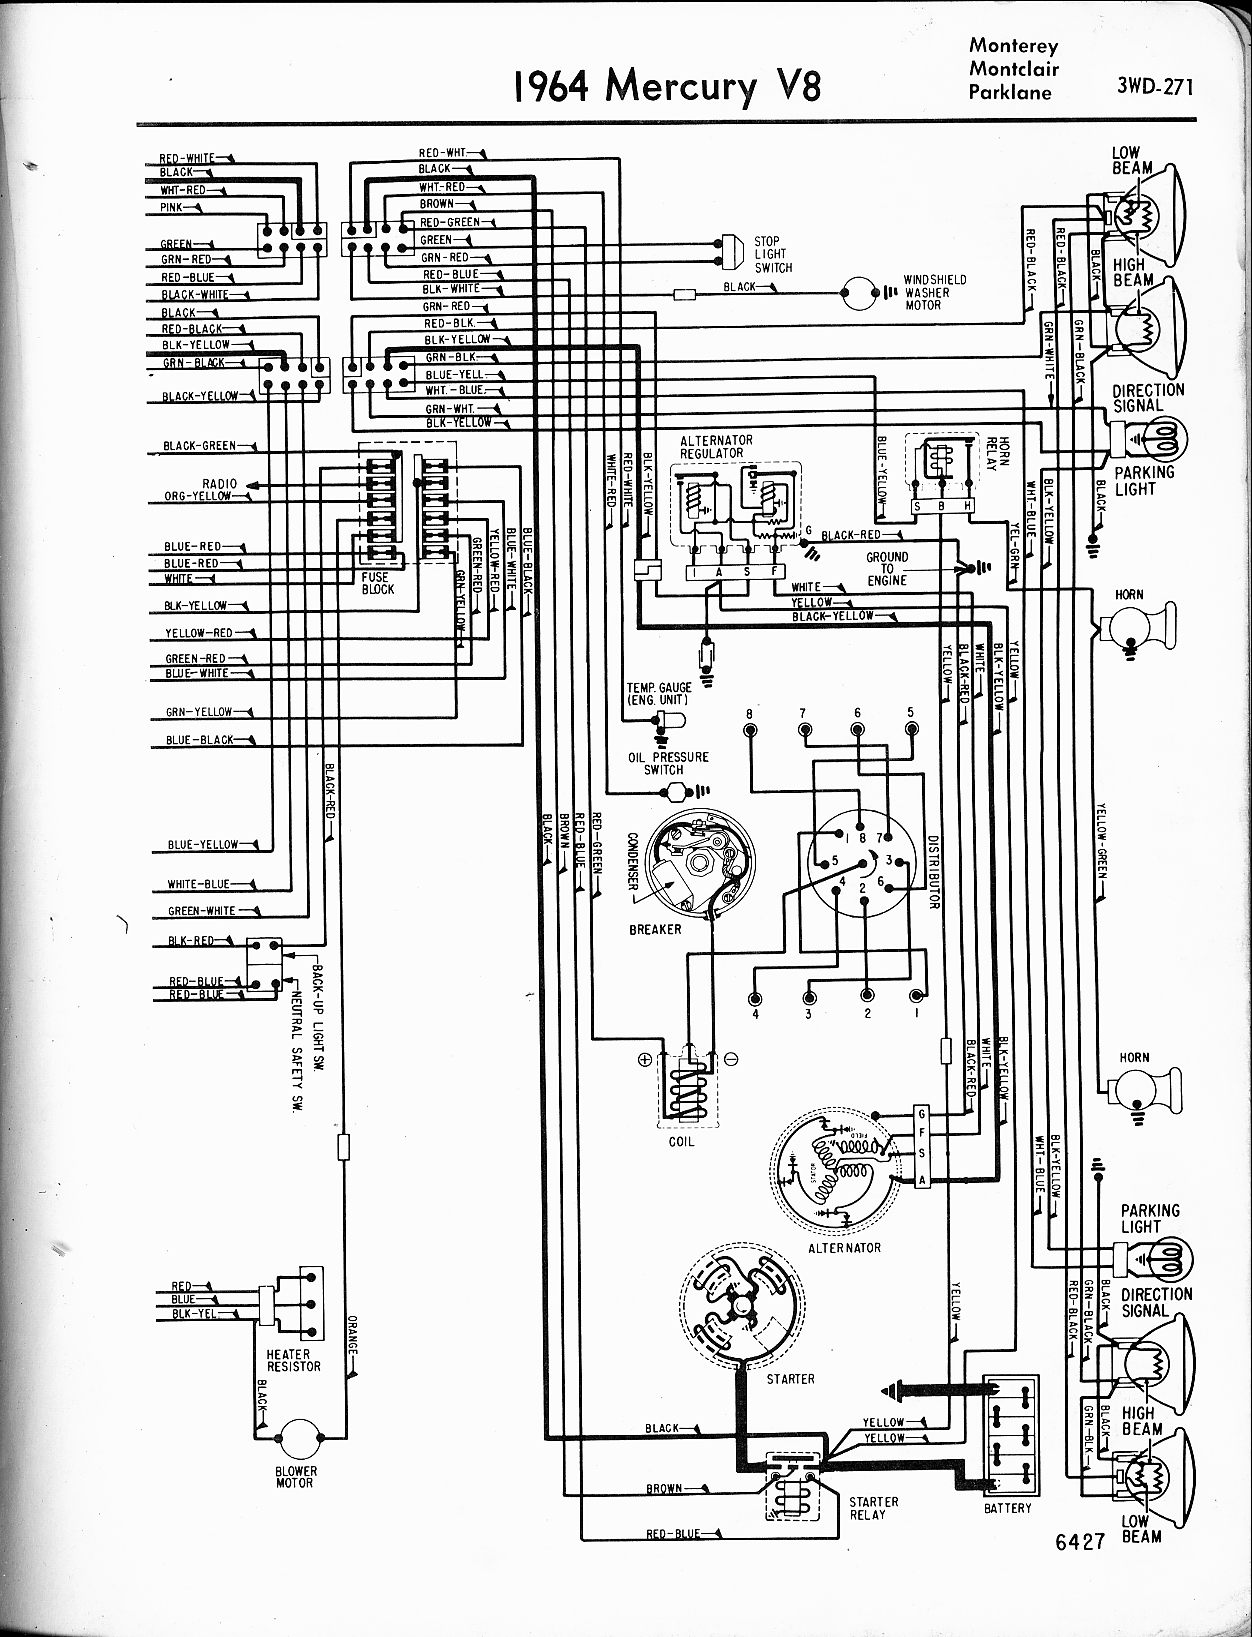 1956 mercury wiring harness wiring diagram1956 mercury wiring harness wiring diagram1950 mercury wiring harness wiring diagrams thewiring diagram for 1950 mercury